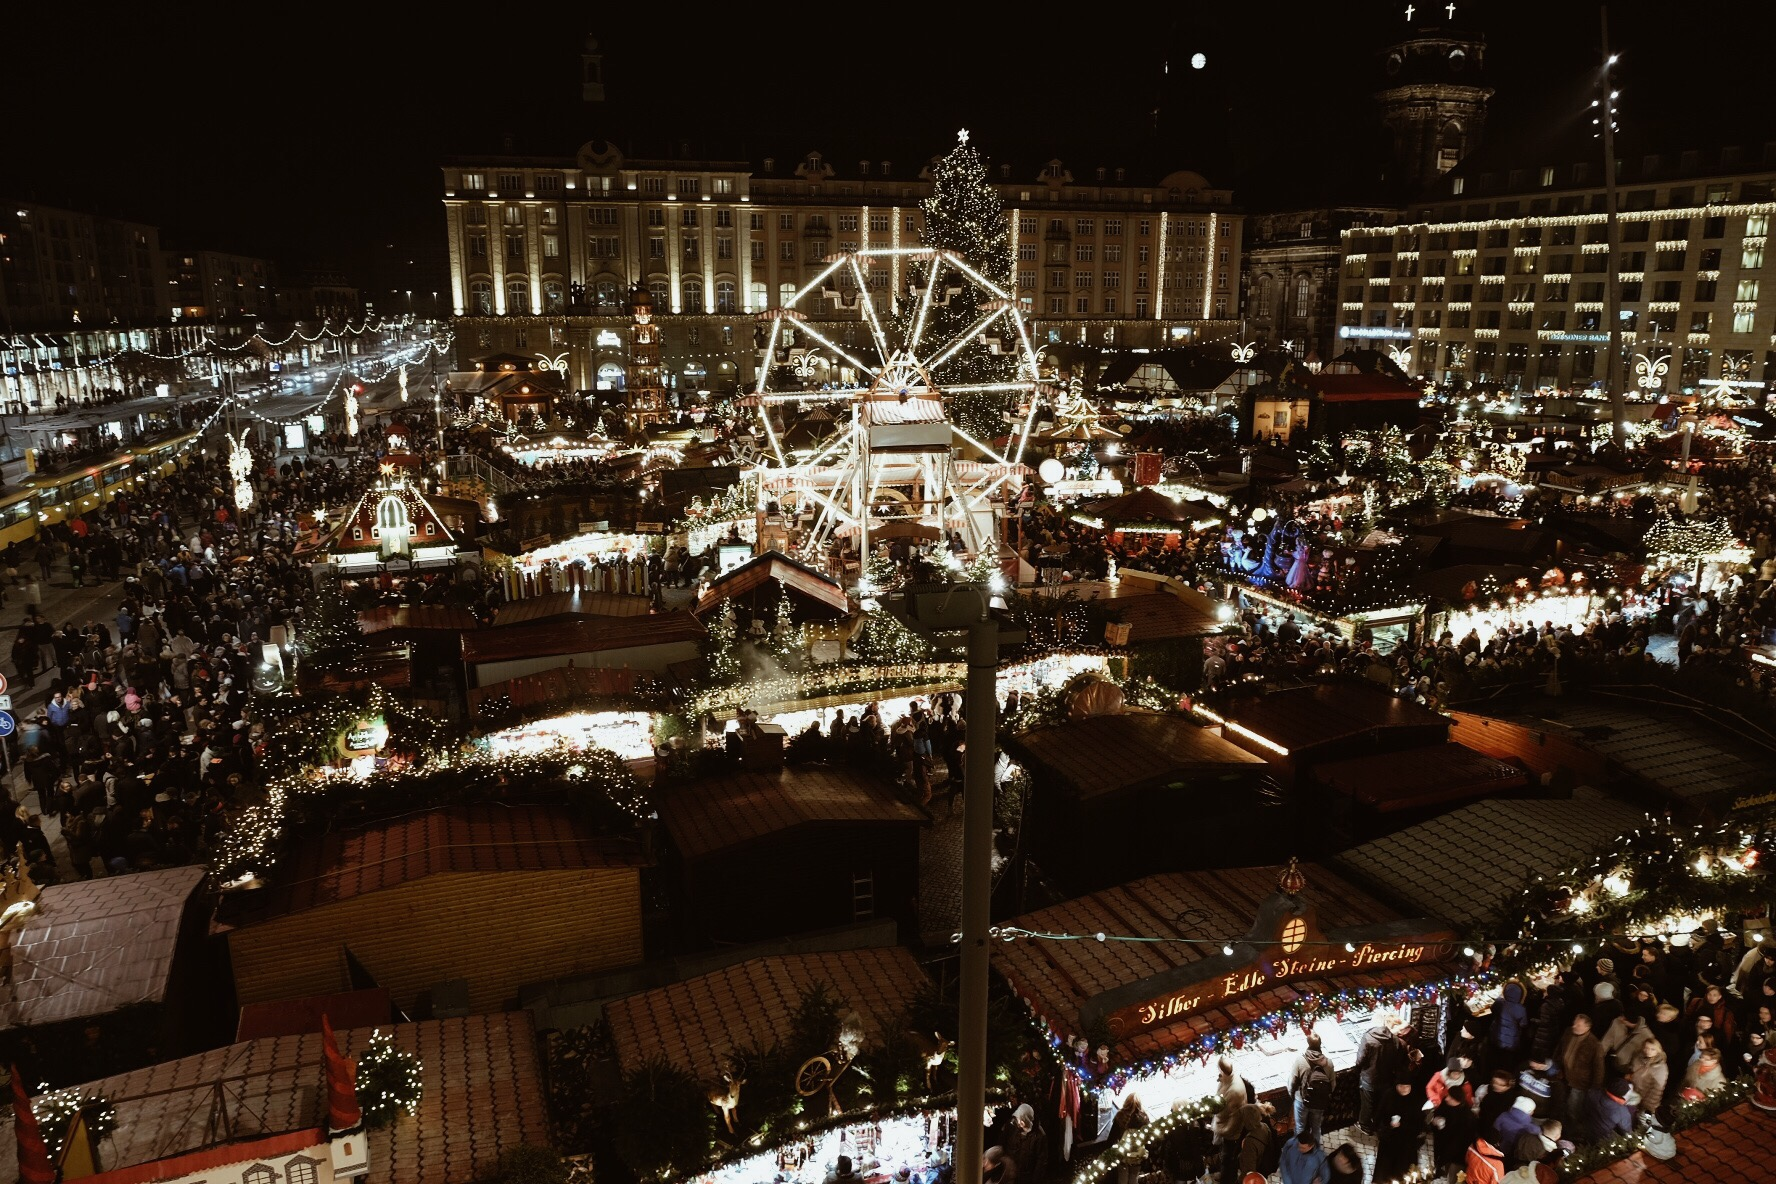 The Striezelmarkt in Dresden, Germany